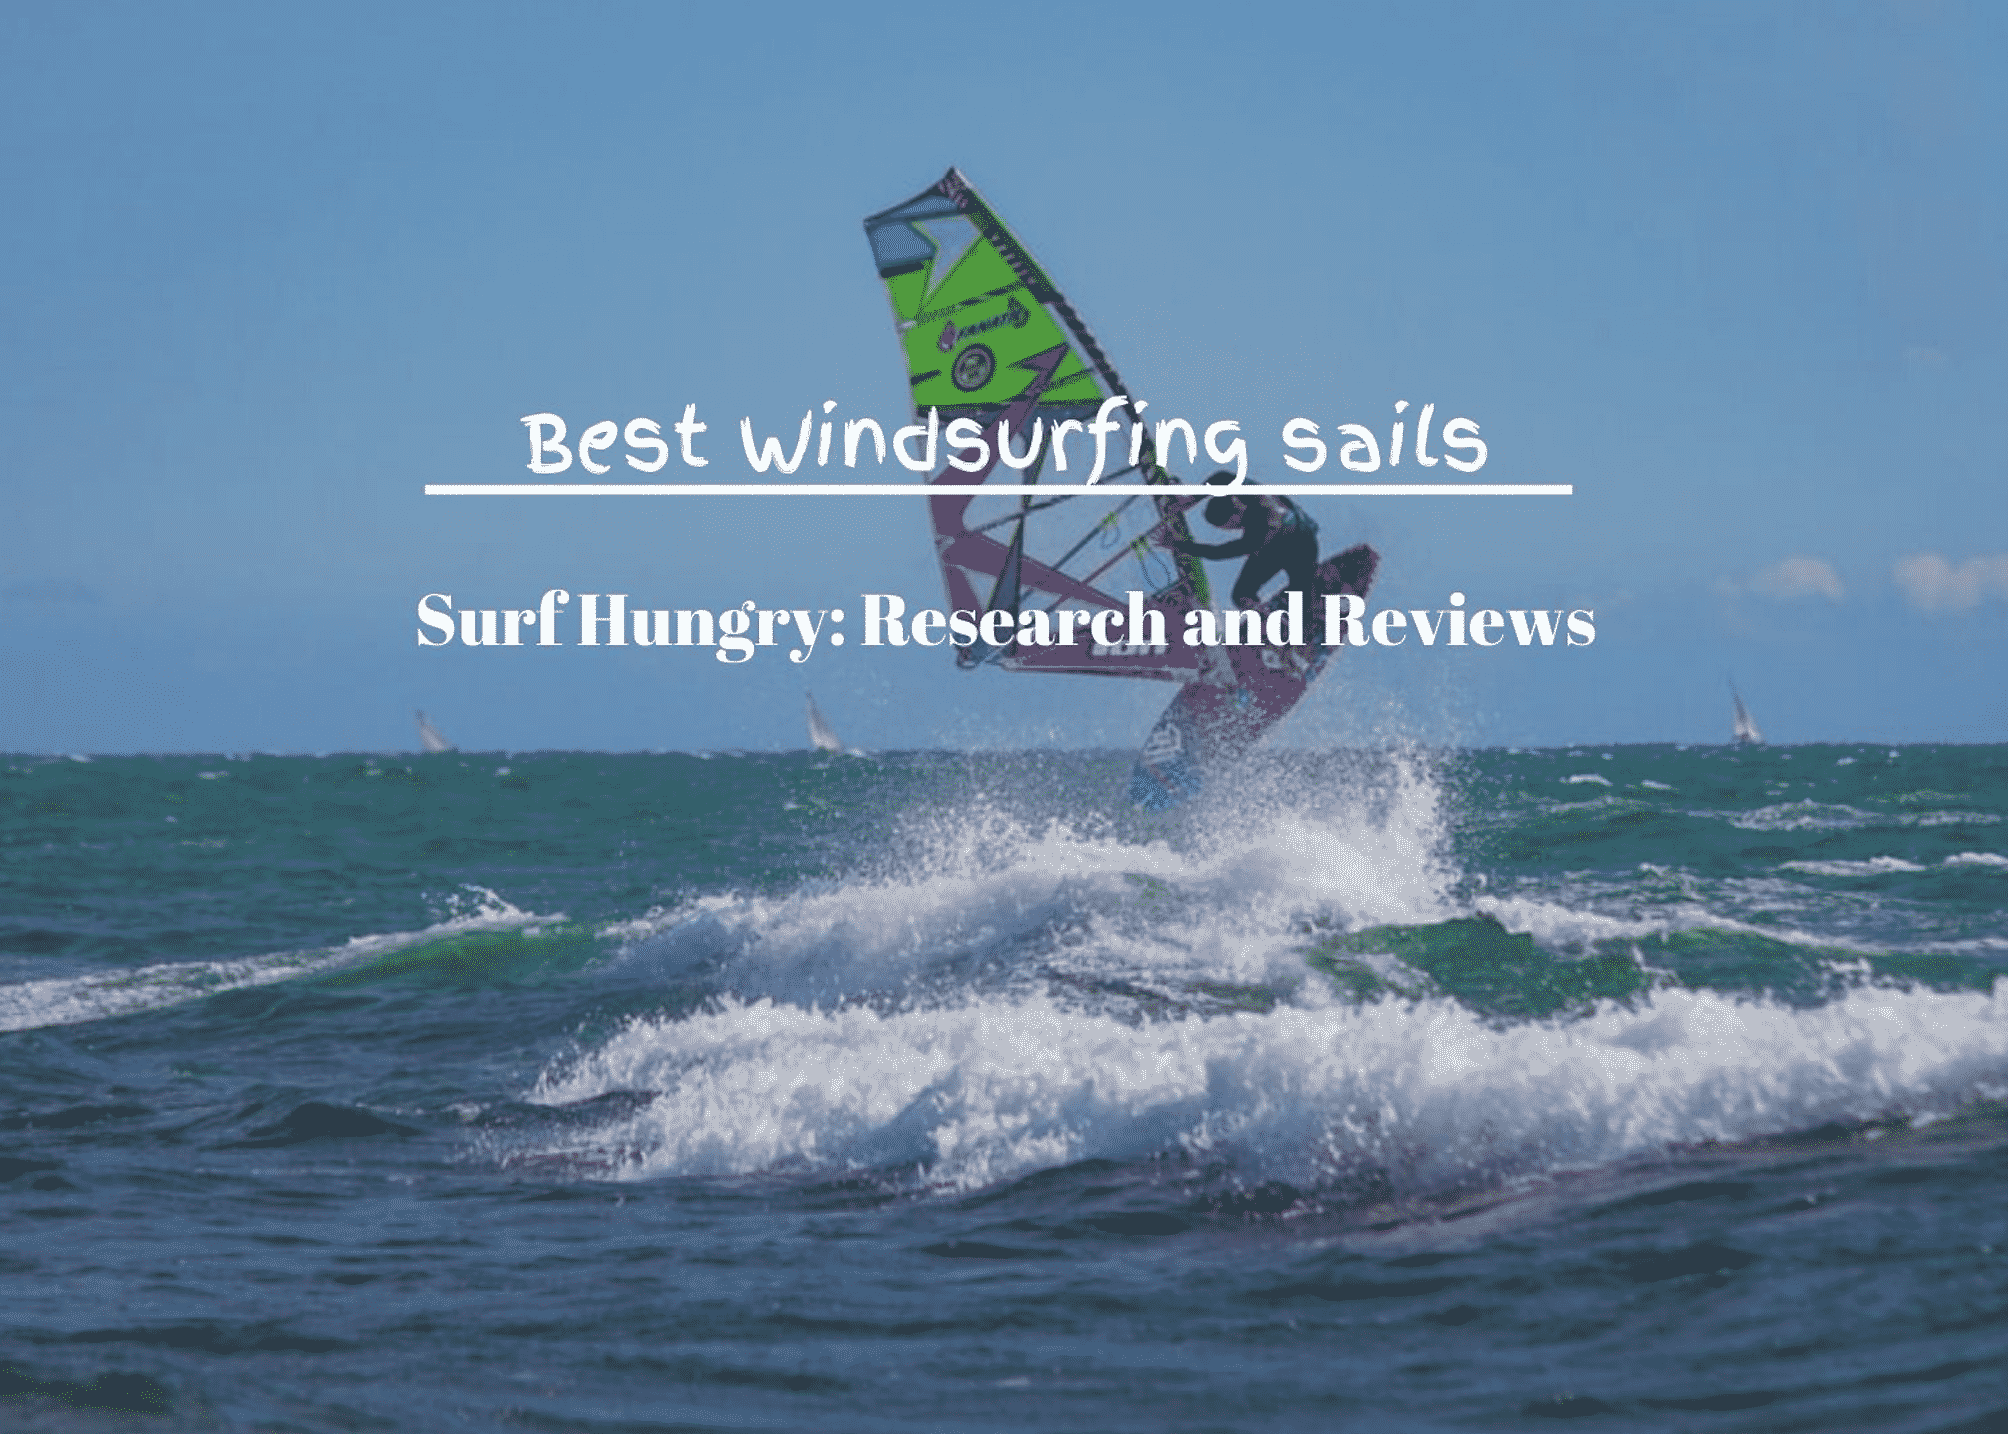 best windsurfing sails